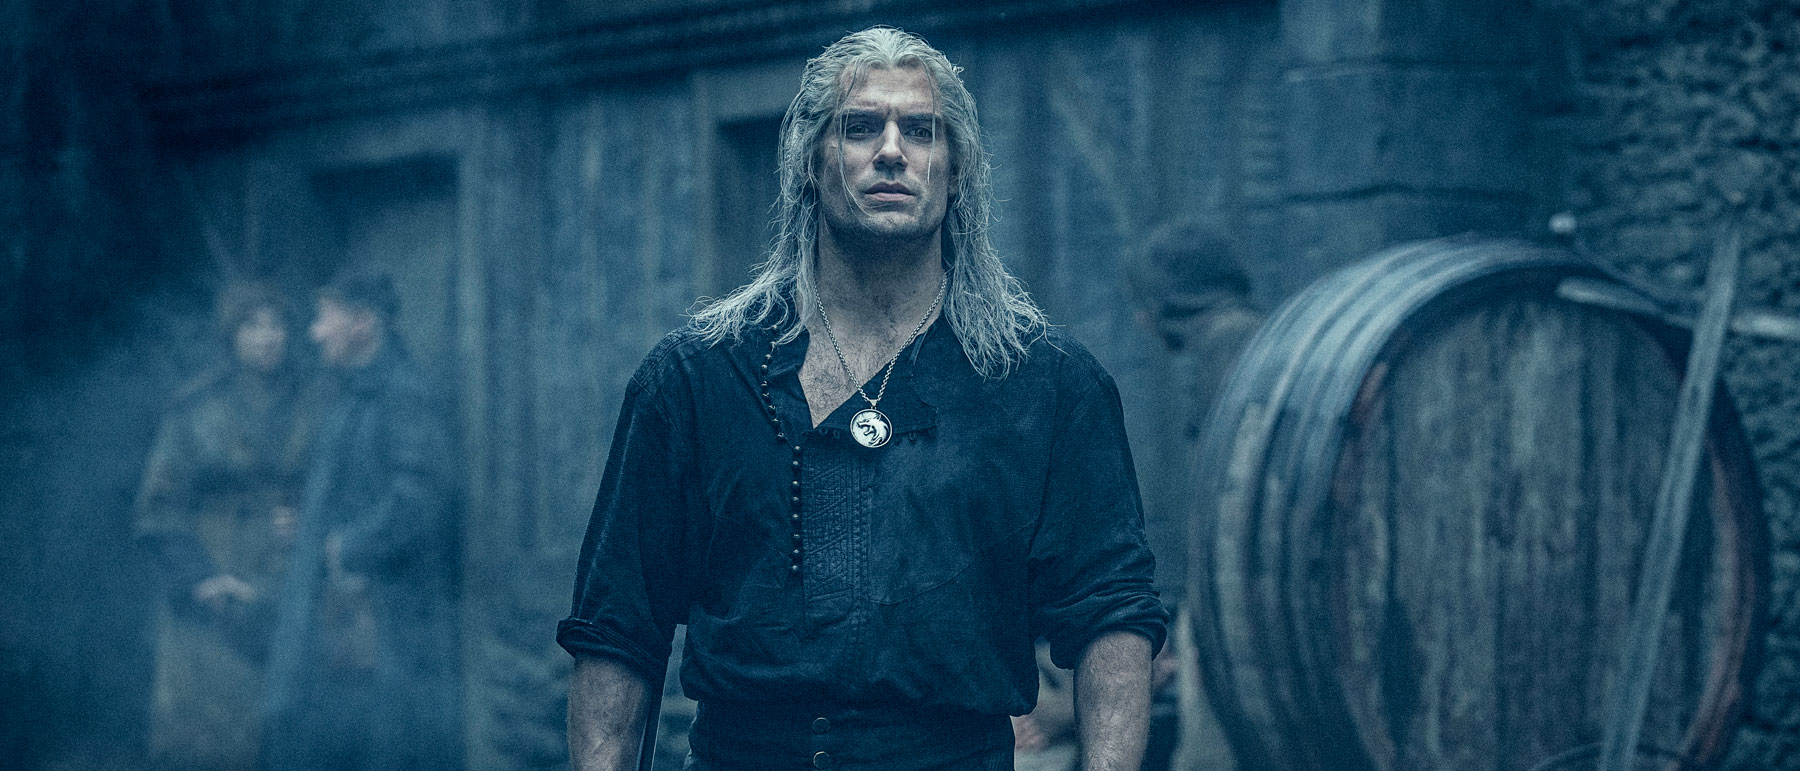 The-Witcher-Henry-Cavill-Geralt-of-Rivia-release-date